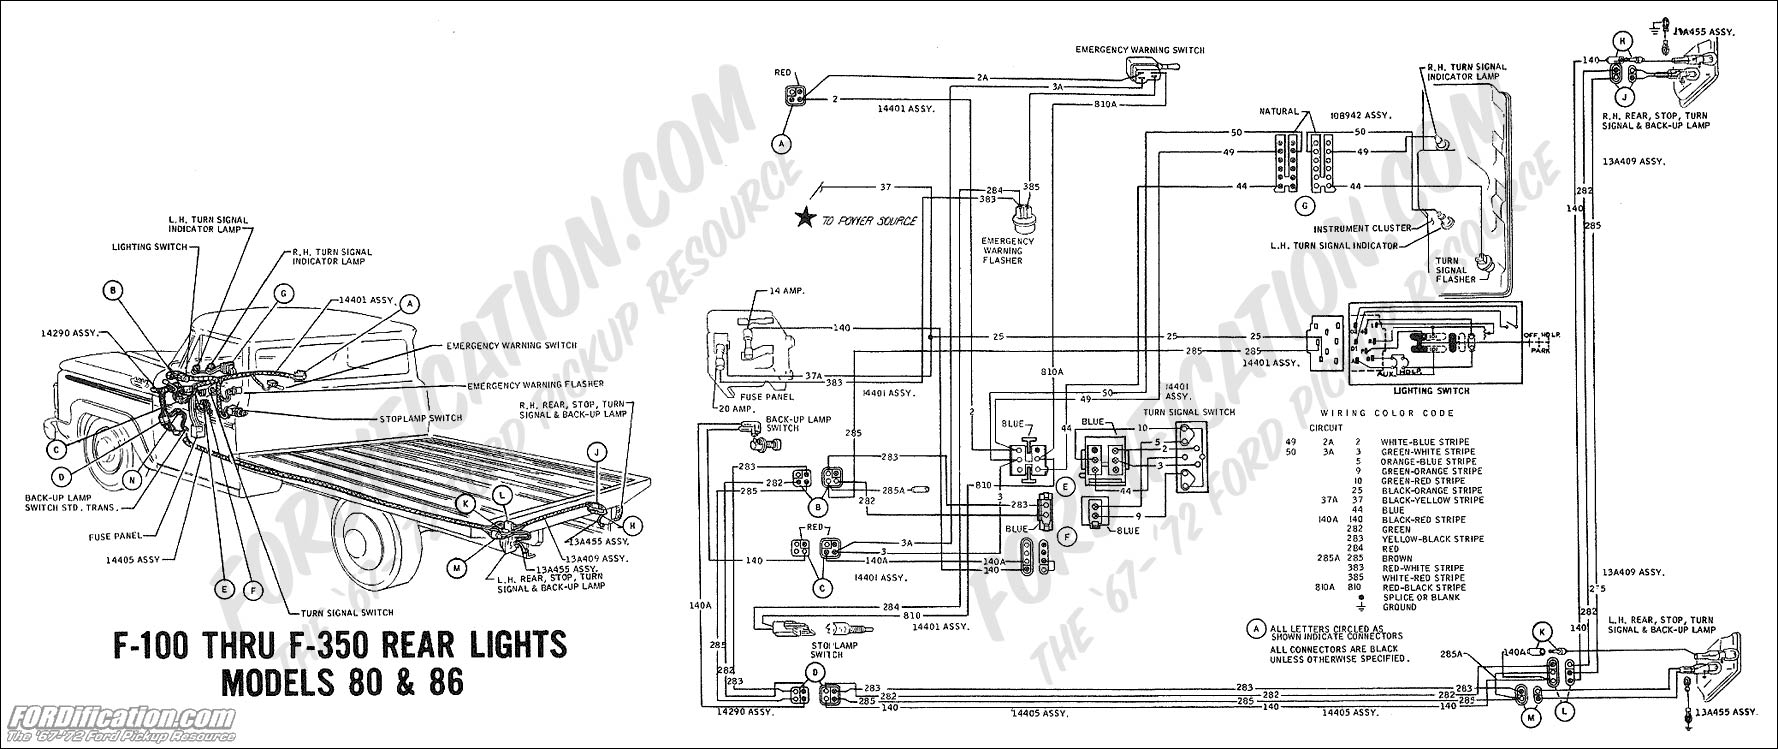 1969 Ford F 350 Wiring Diagram Lamp Archive Of Automotive El Camino Lights Truck Technical Drawings And Schematics Section H Rh Fordification Com